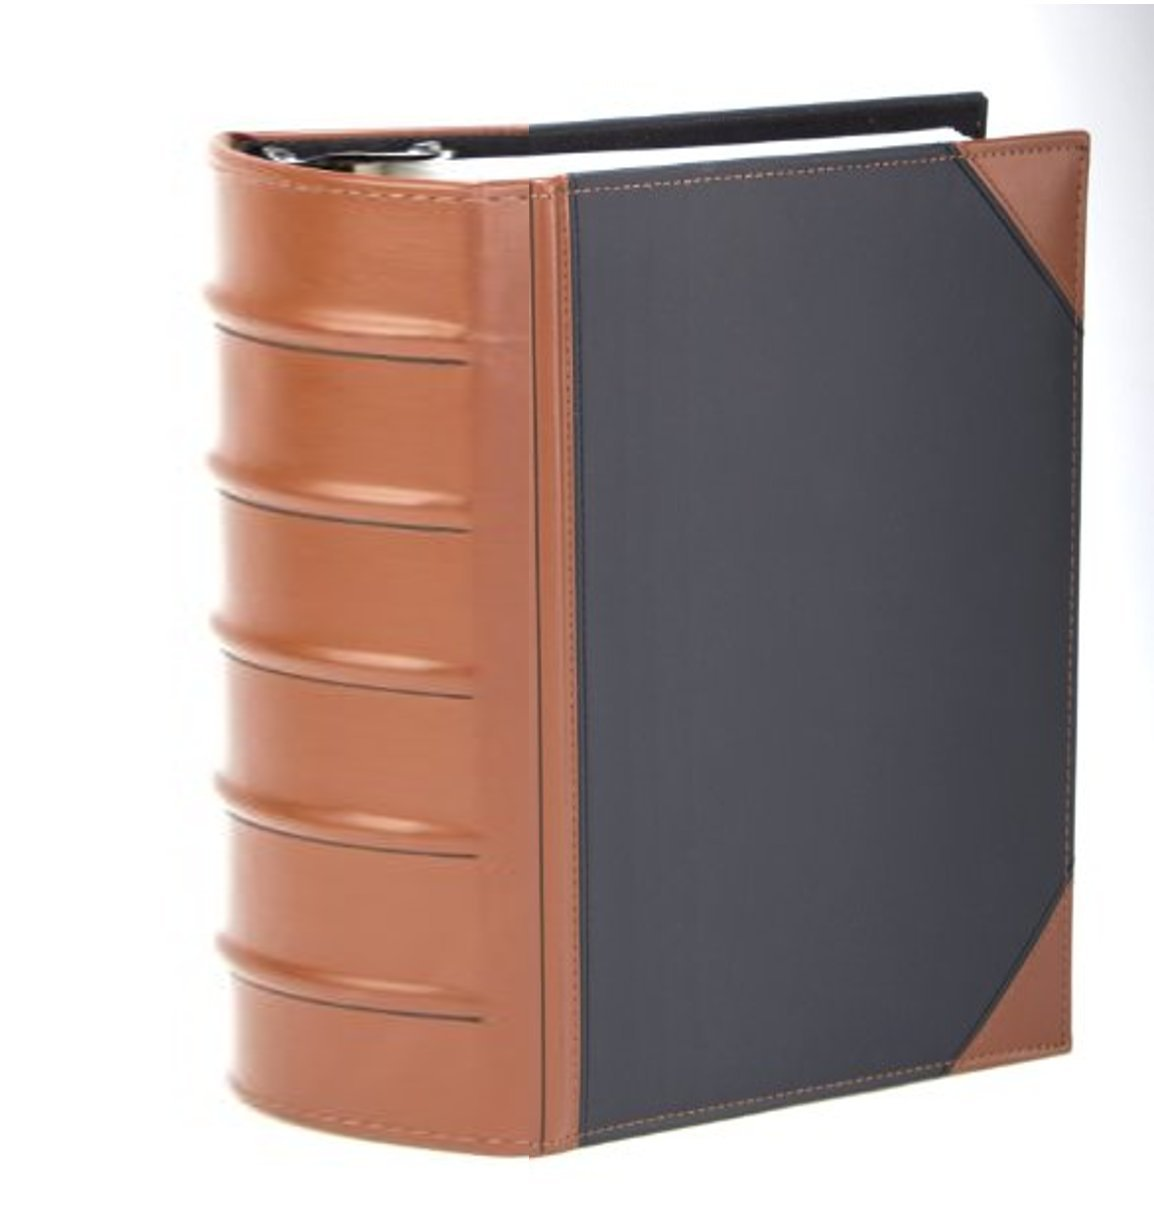 Executive Binder, English Leather 2 Tone with Stitching and Ribbed Spine, Heavy Duty 3'' Inch 3 D-Ring with Buster, Holds 625 8.5''x 11'' Sheets Black by Kleer Vu